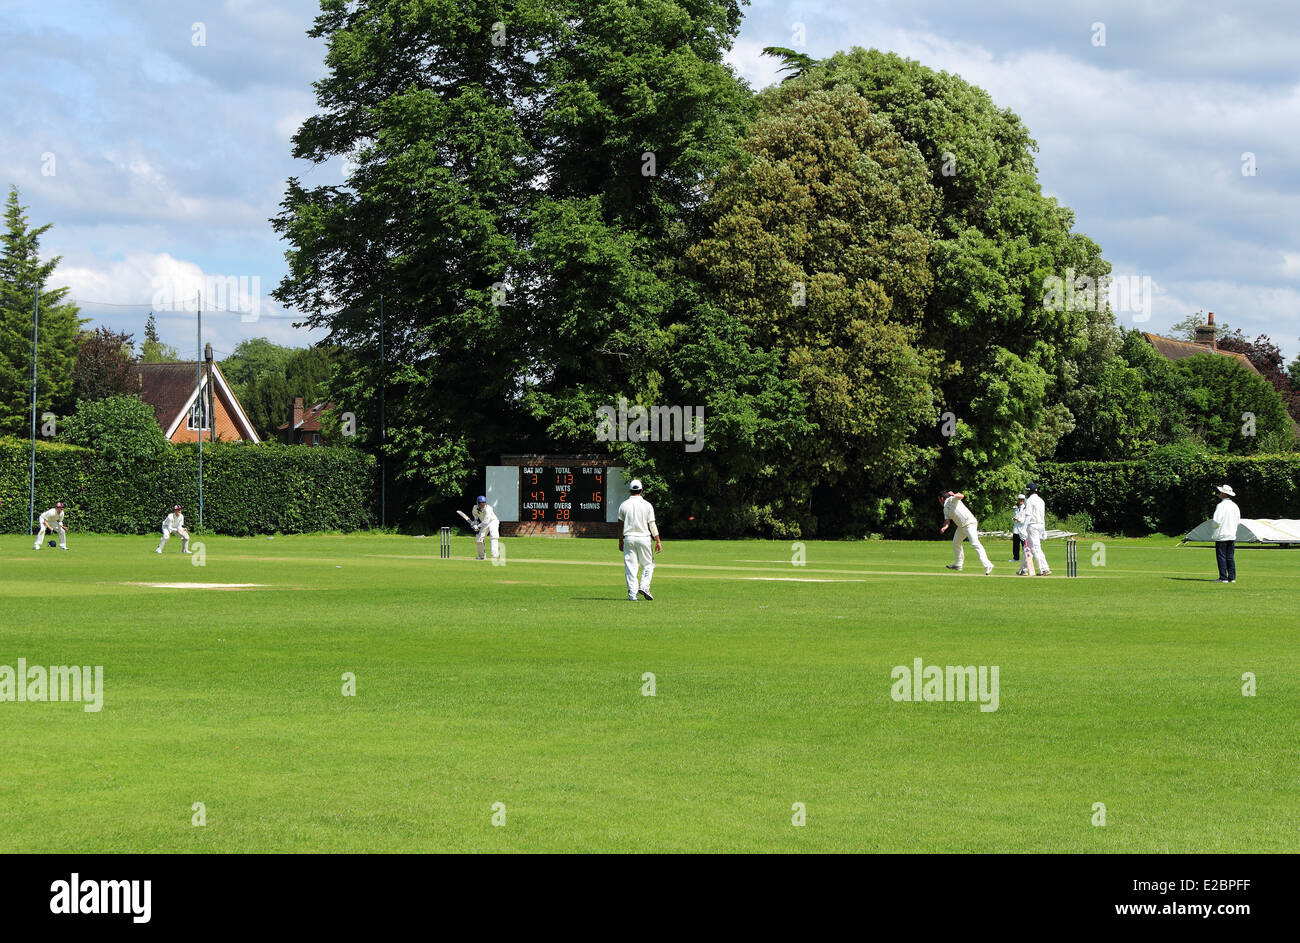 Batsman in action at an English Cricket match - Stock Image